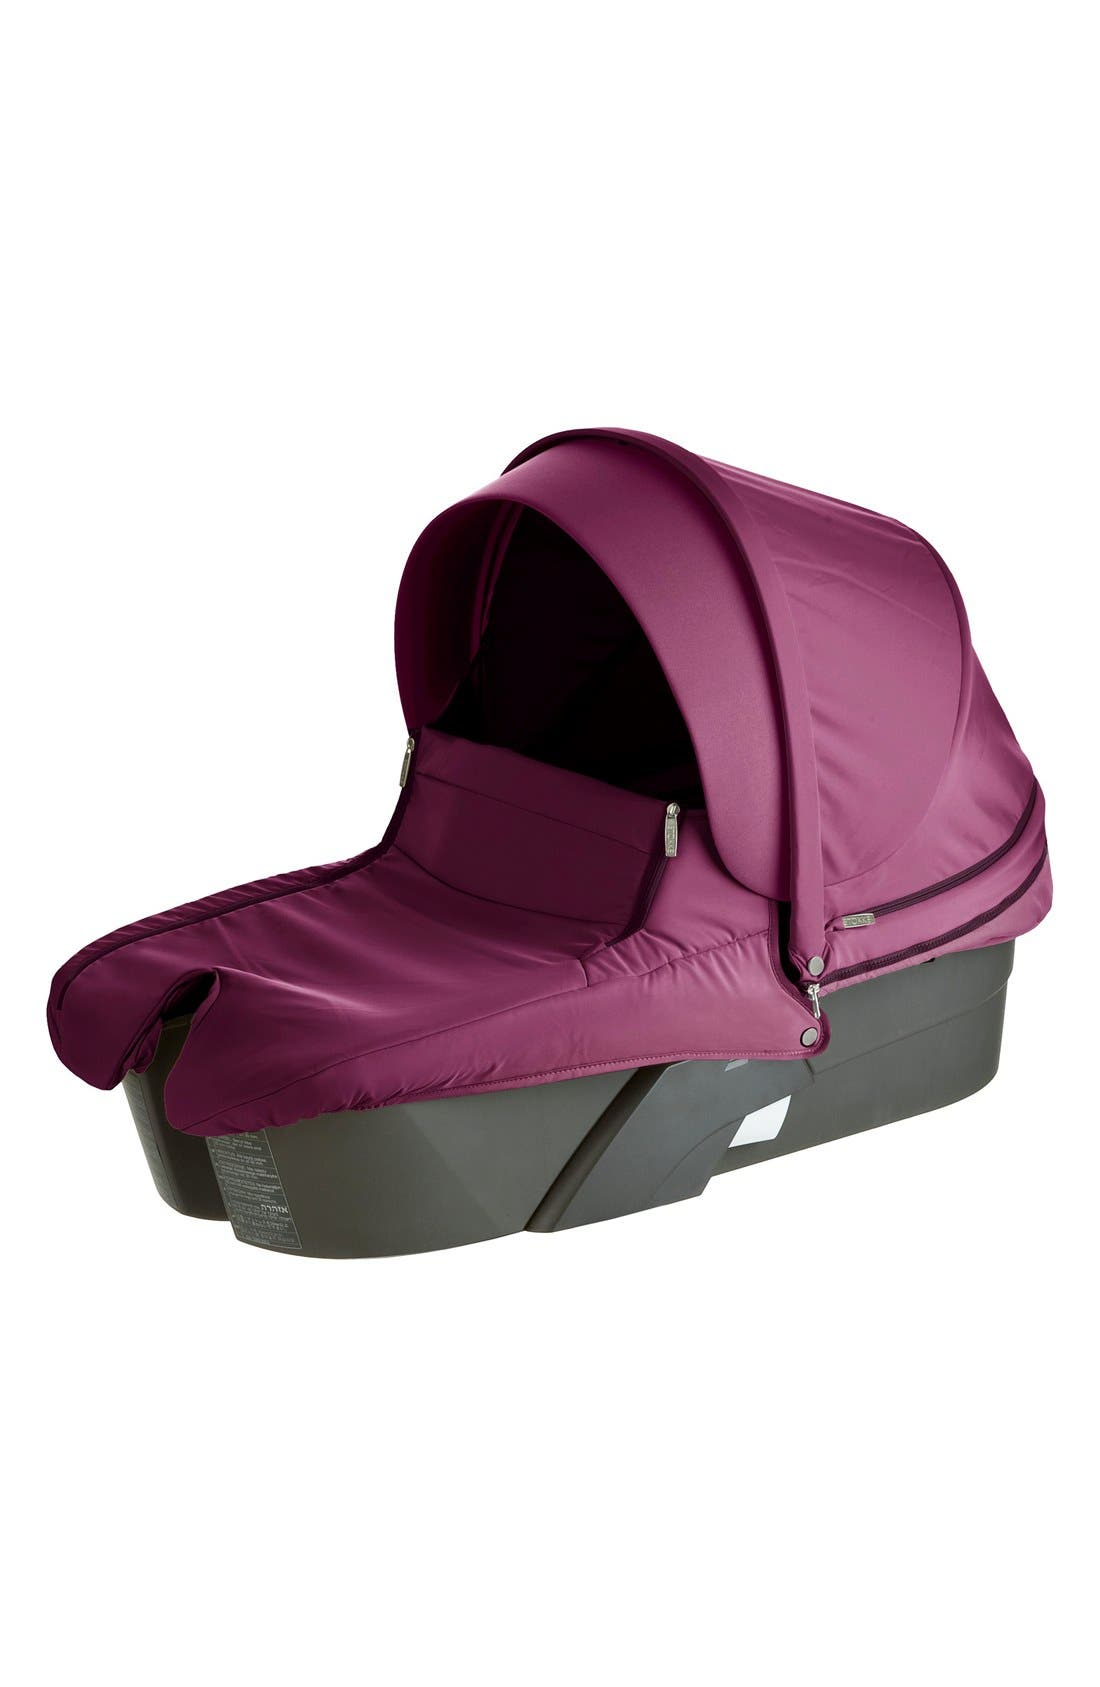 'Xplory<sup>®</sup>' Stroller Carry Cot,                         Main,                         color, 500